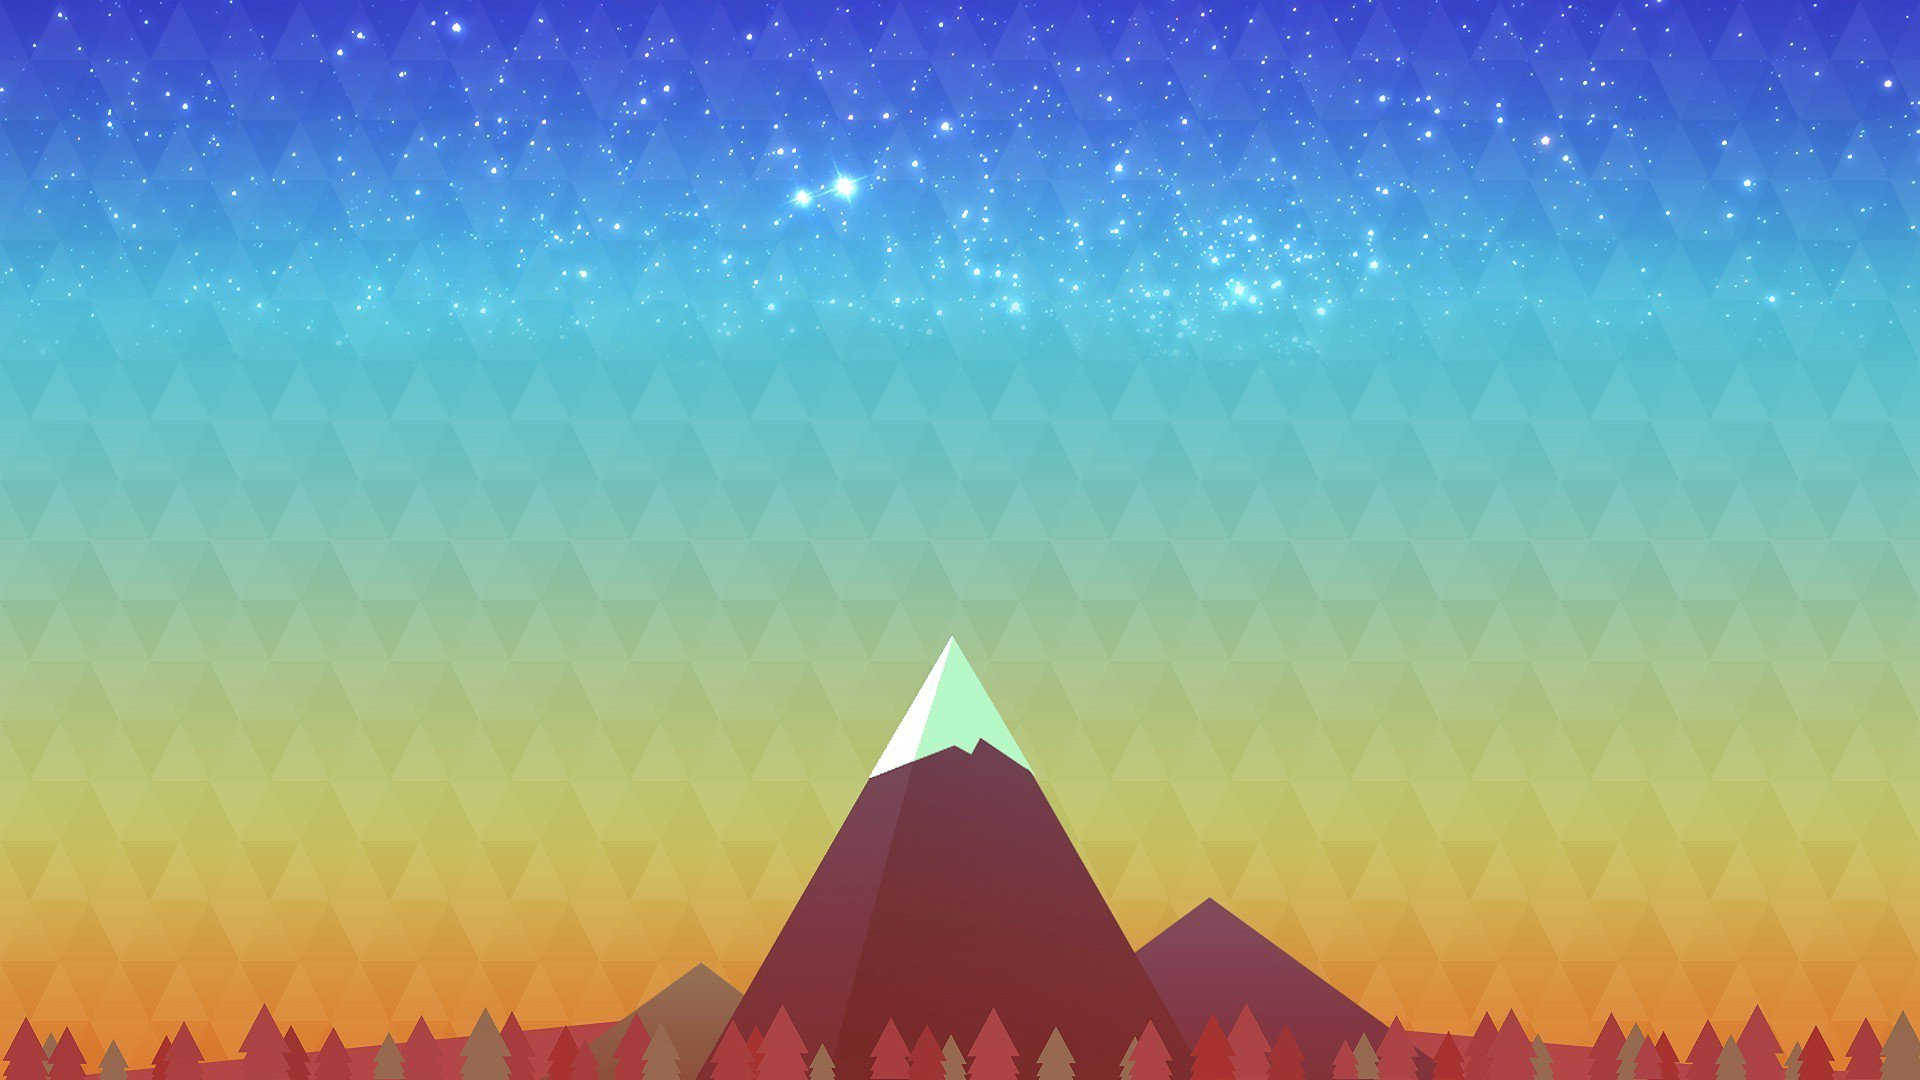 Minimalism Mountain Peak, HD Artist, 4k Wallpapers, Images ...